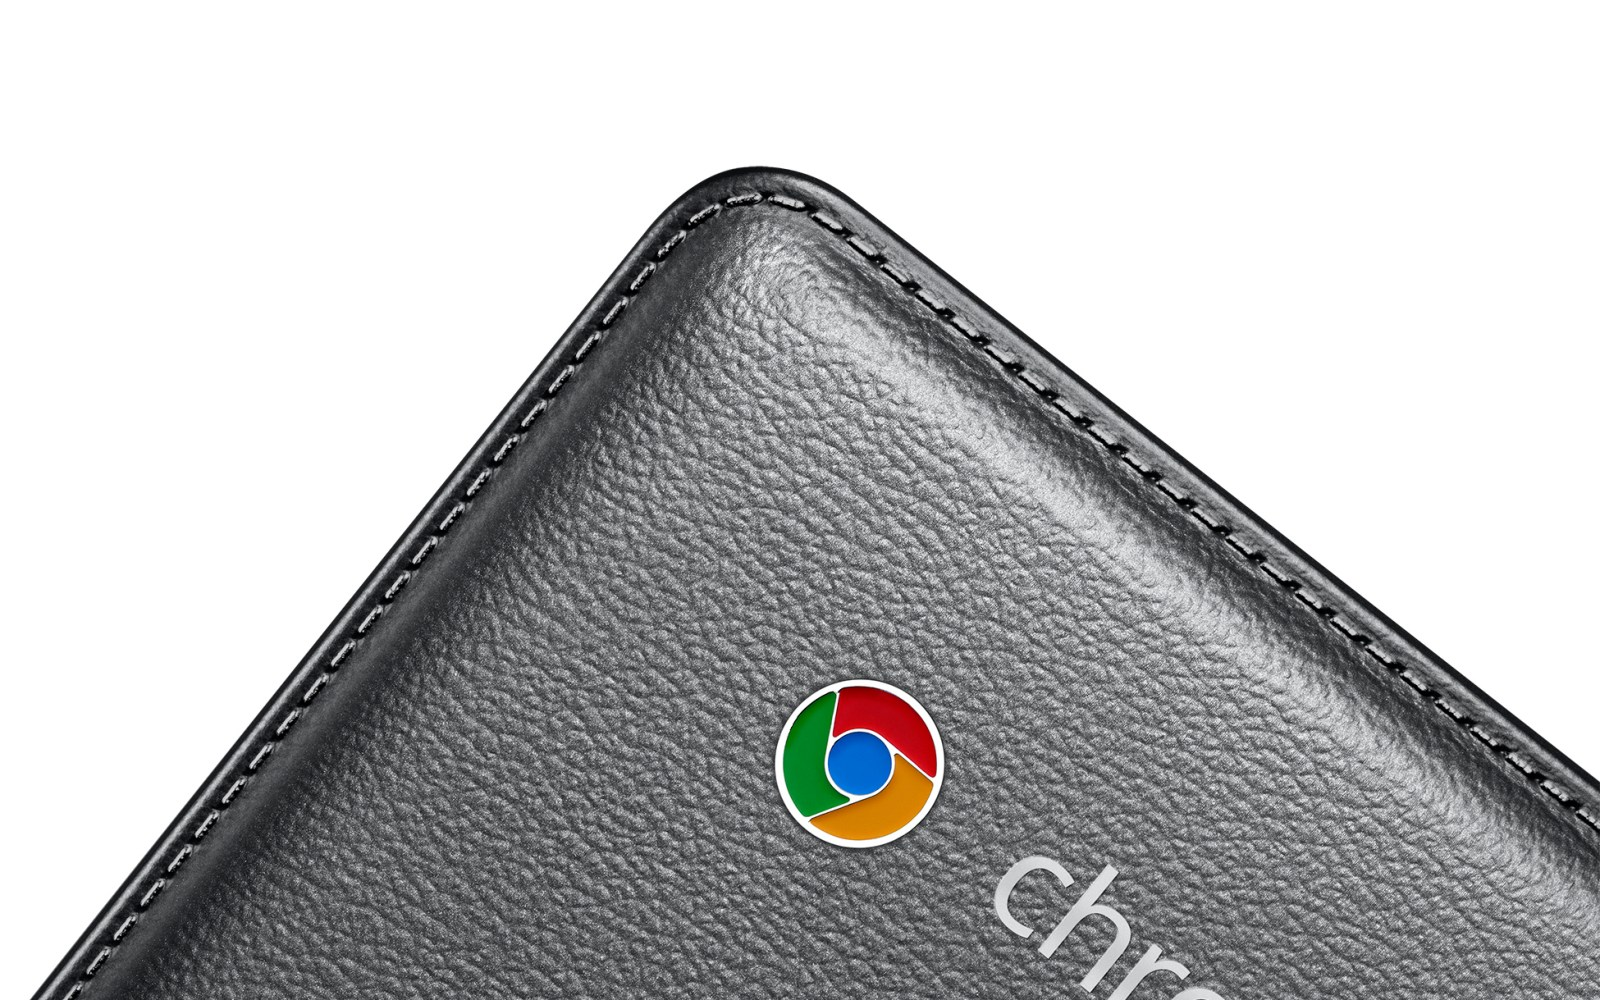 Google sold more Chromebooks to US schools than Apple did iPads in Q3